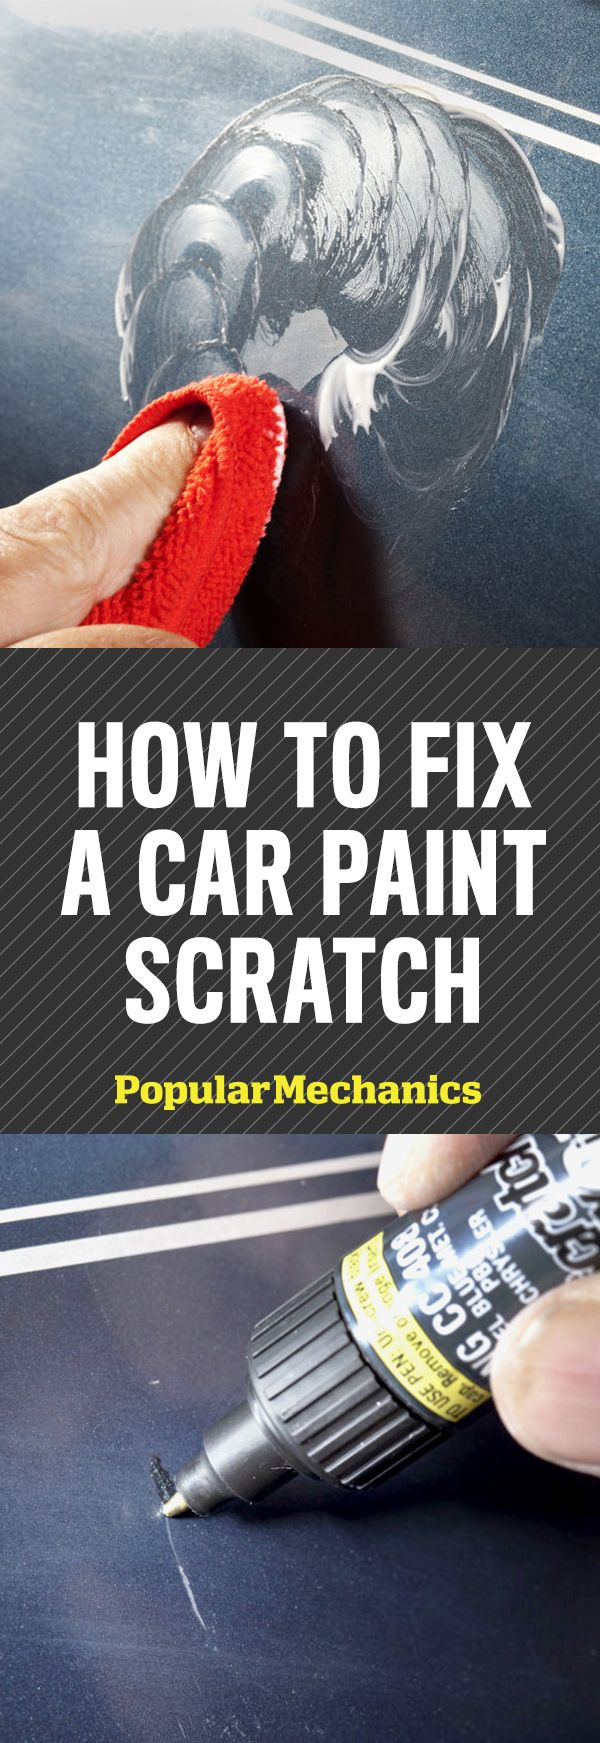 10 car scratch remover repair tips how to fix auto paint scratches solutioingenieria Images